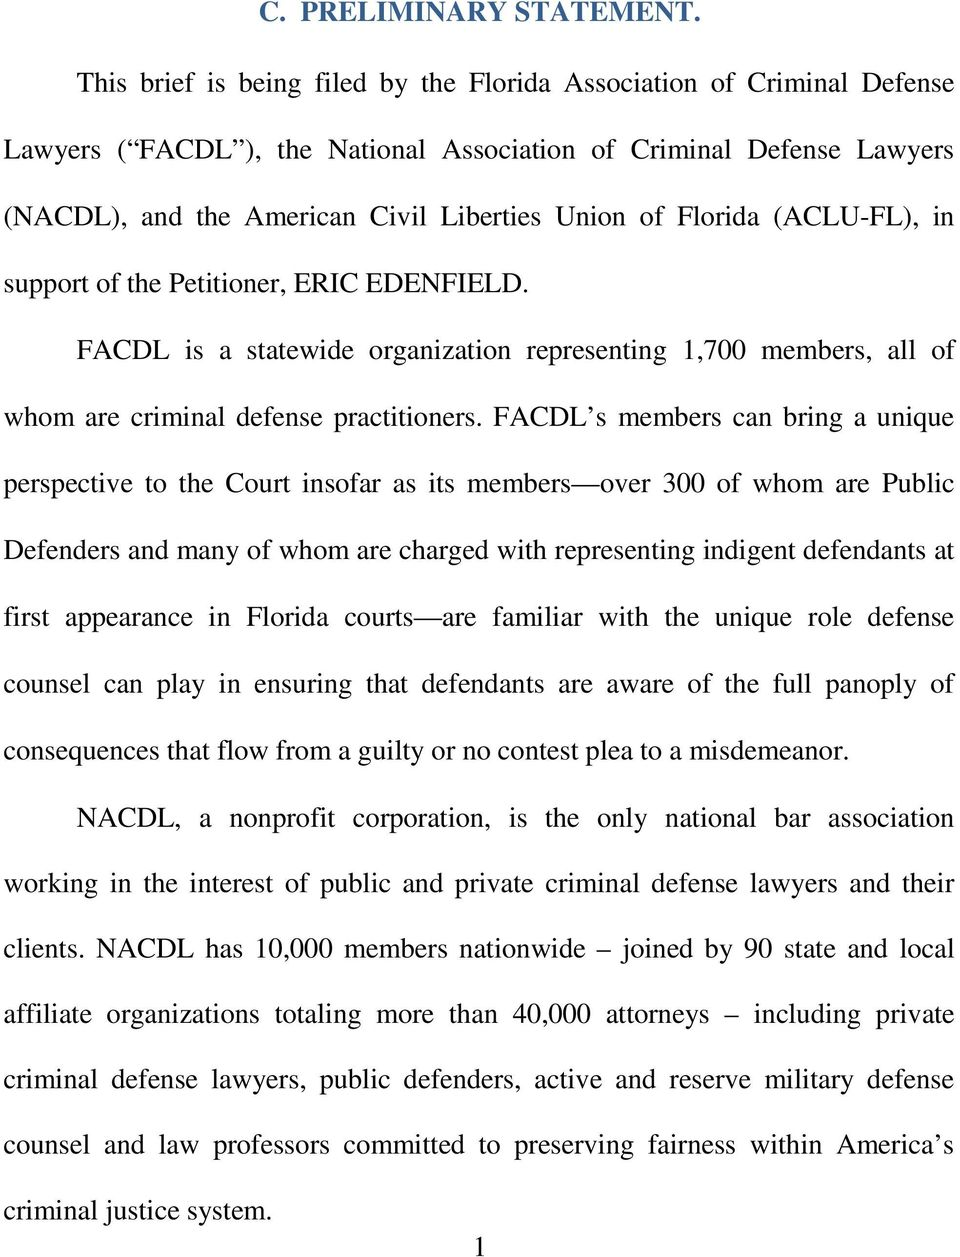 Florida (ACLU-FL), in support of the Petitioner, ERIC EDENFIELD. FACDL is a statewide organization representing 1,700 members, all of whom are criminal defense practitioners.